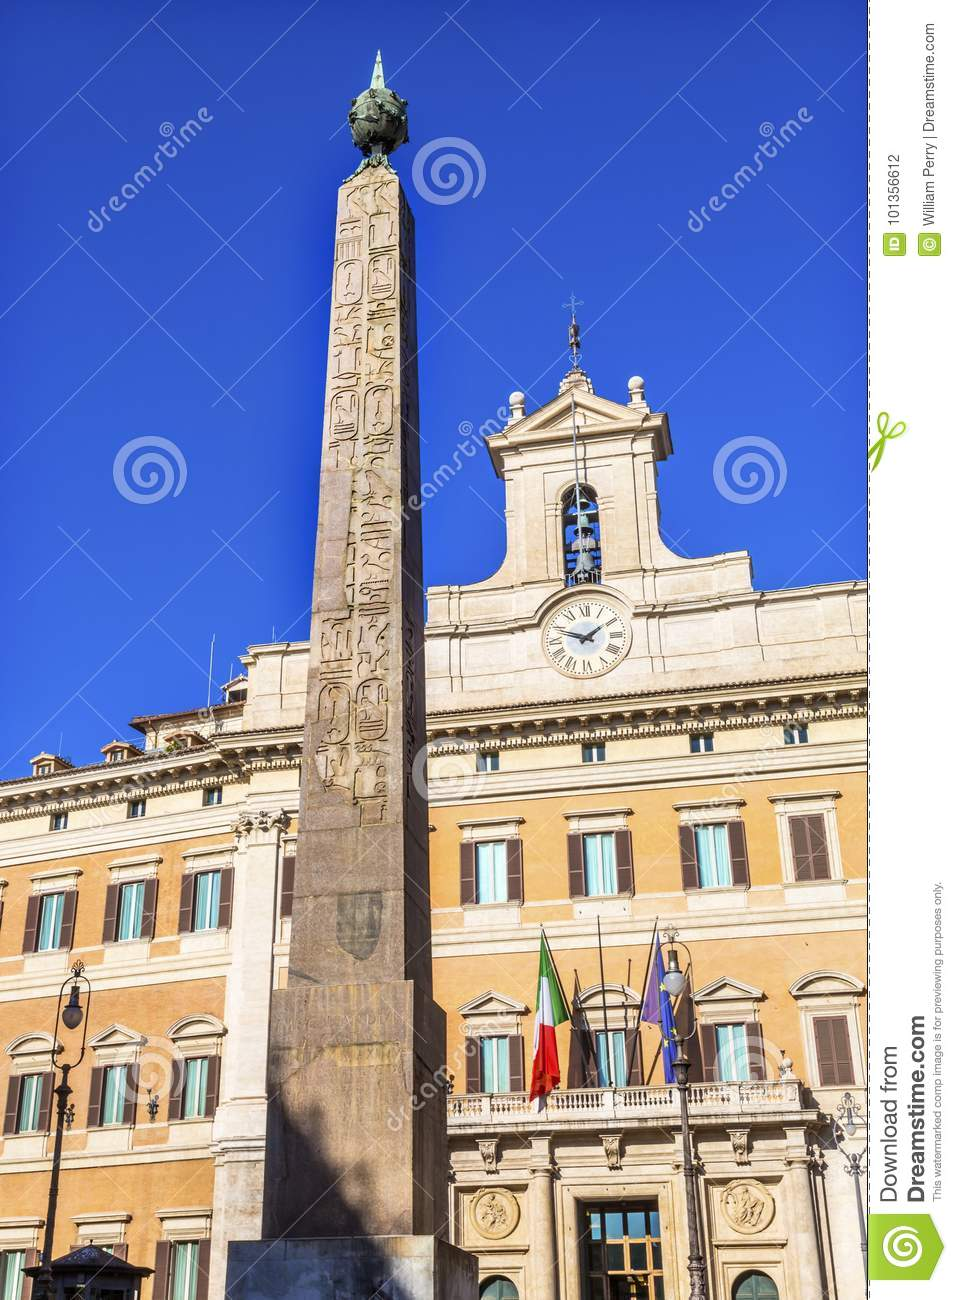 Il parlamento italiano roma stock images download 172 photos for Il parlamento